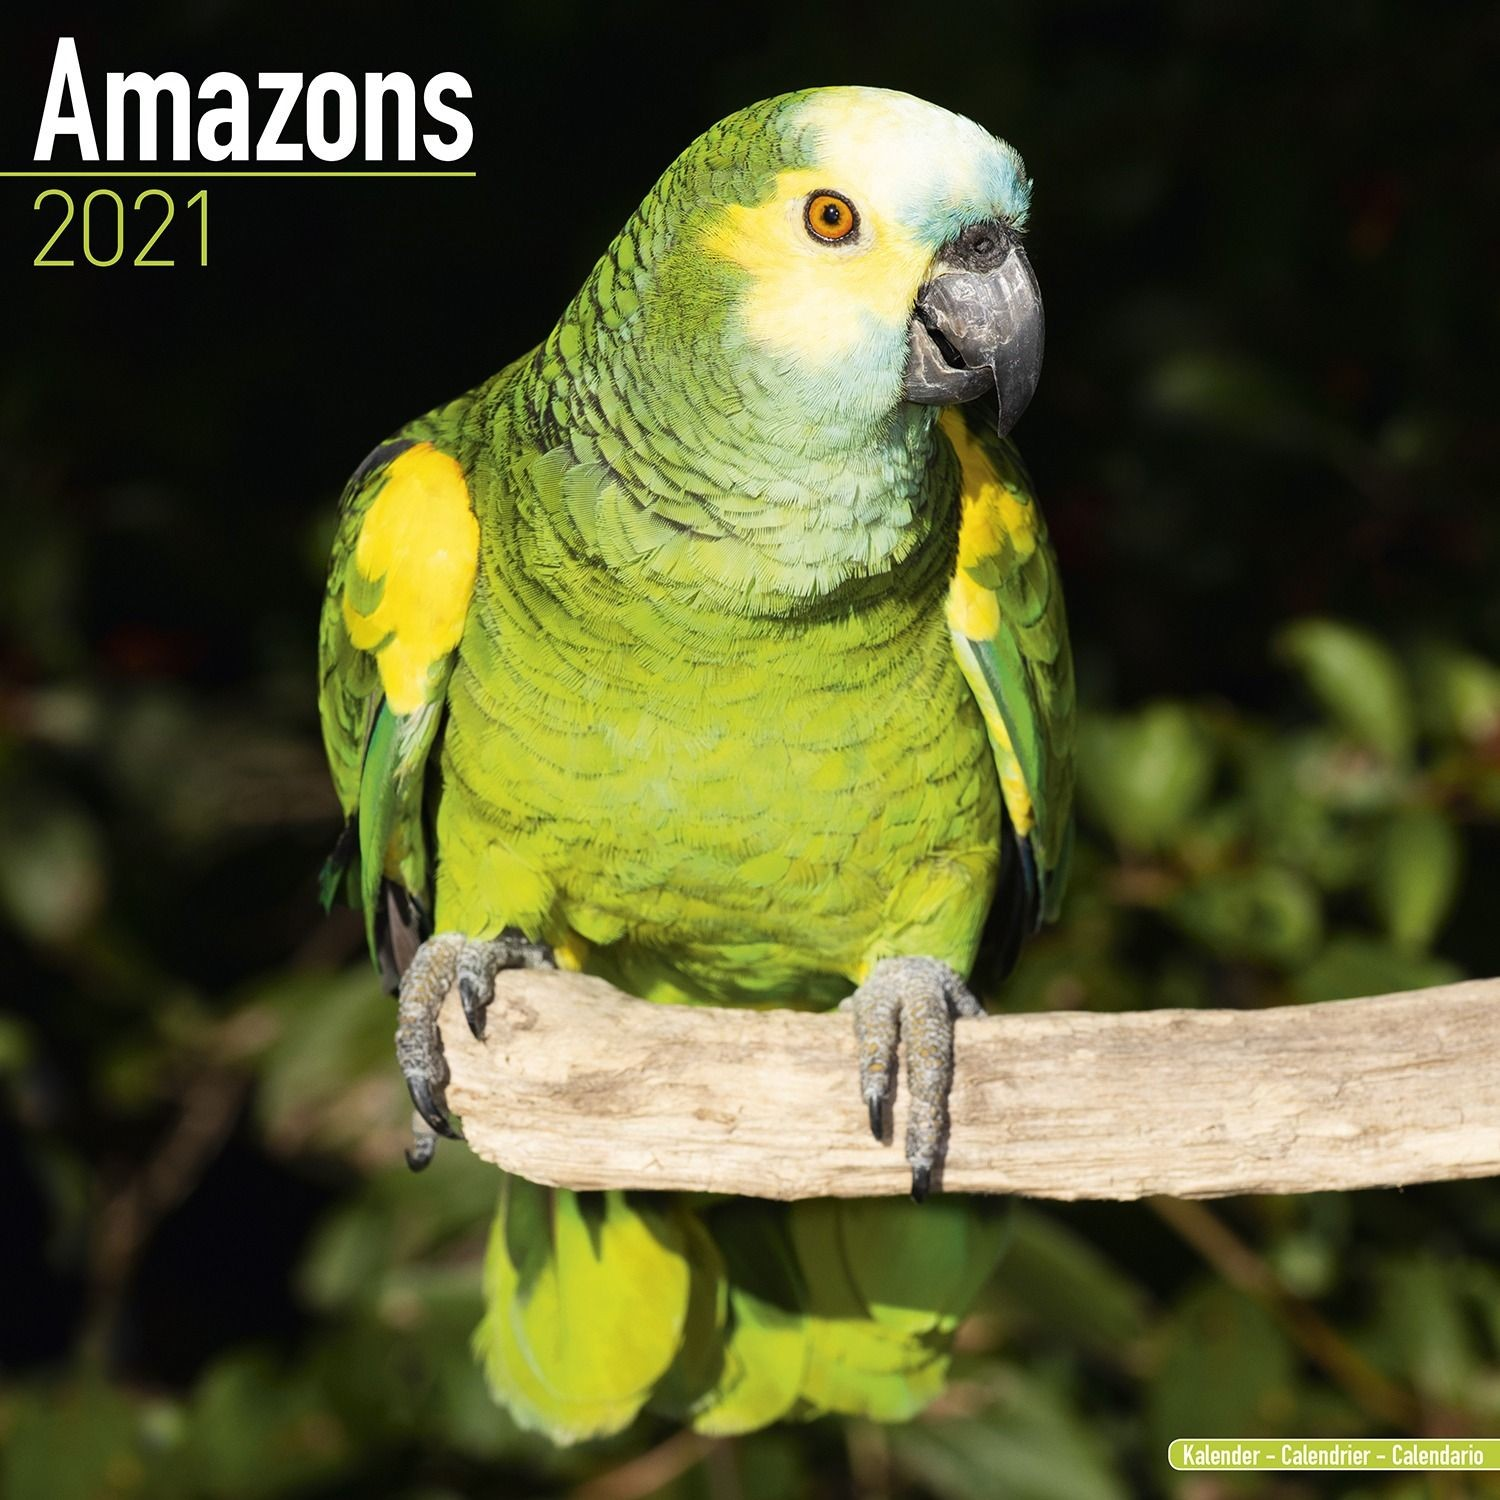 Amazons Wall Calendar 2021 by Avonside